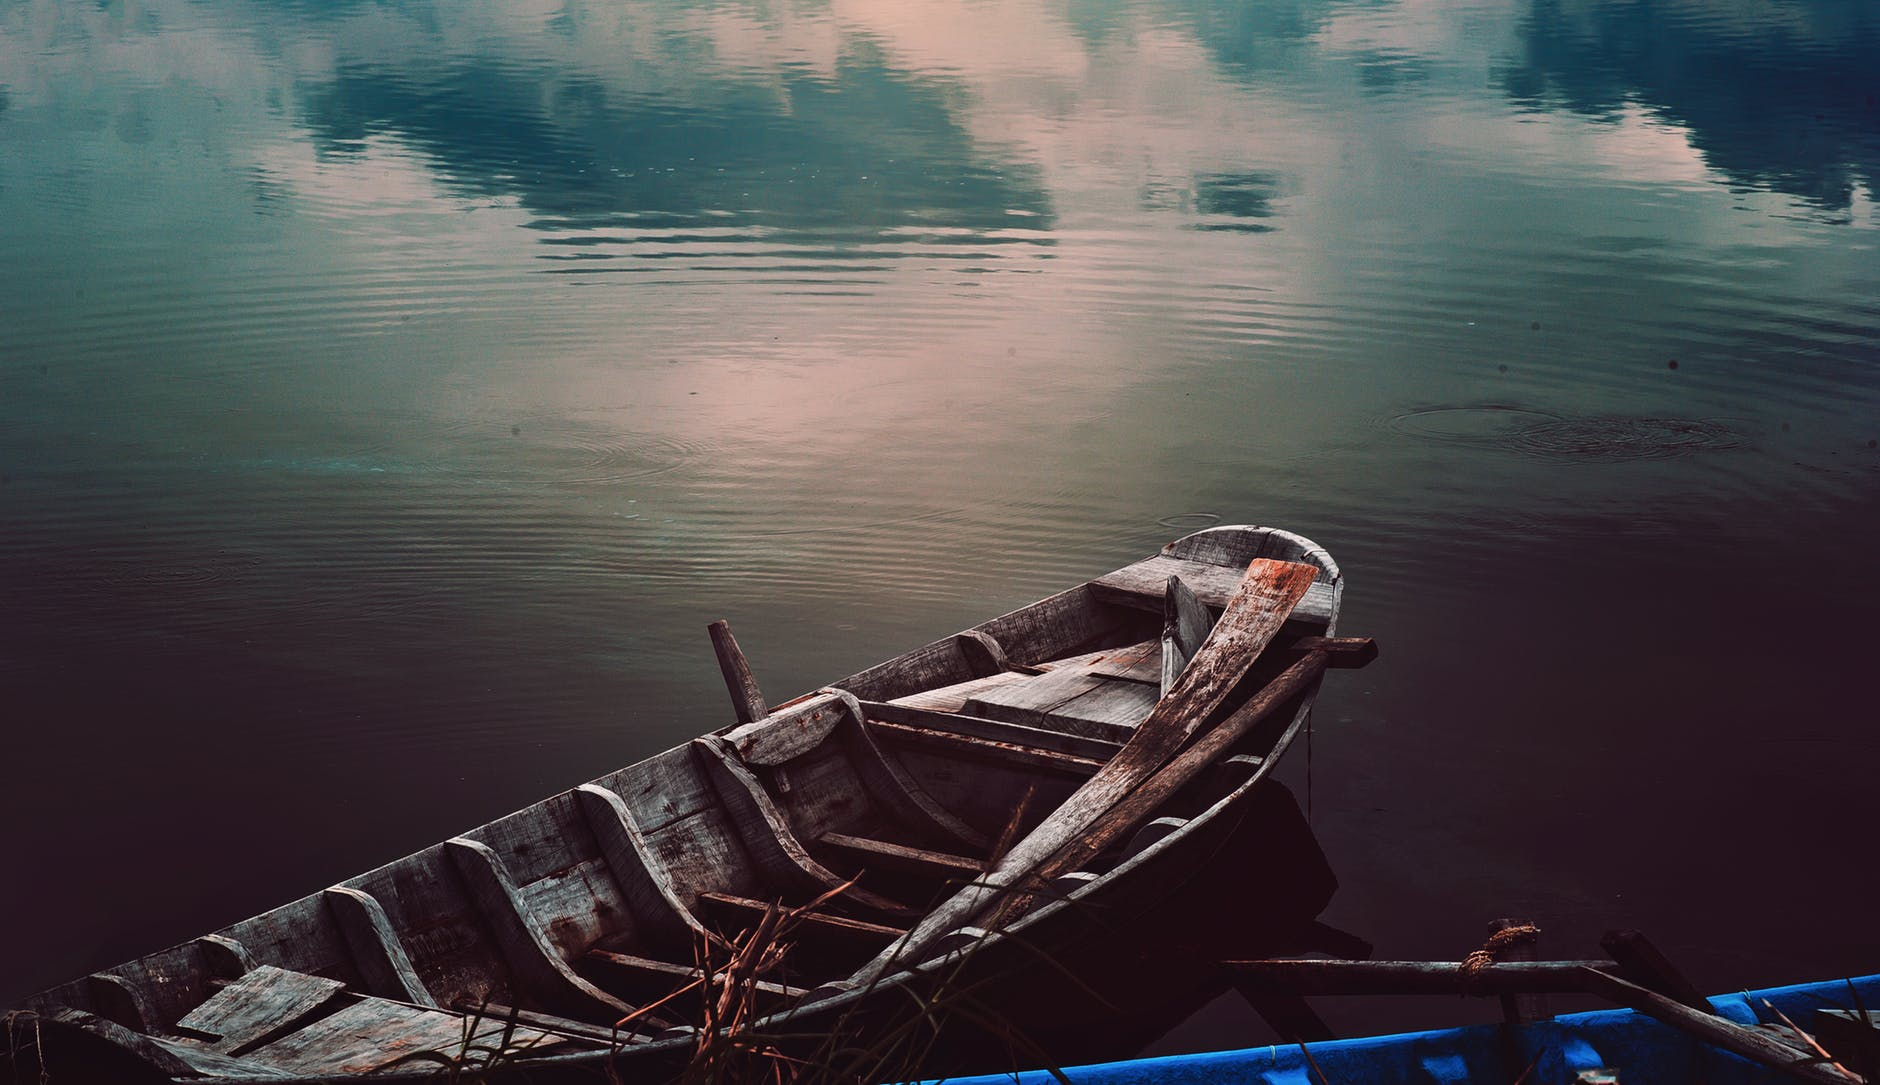 Image Description: A dreamy image of an old rowboat on a still lake. Clouds are mirrored in the water of the lake.